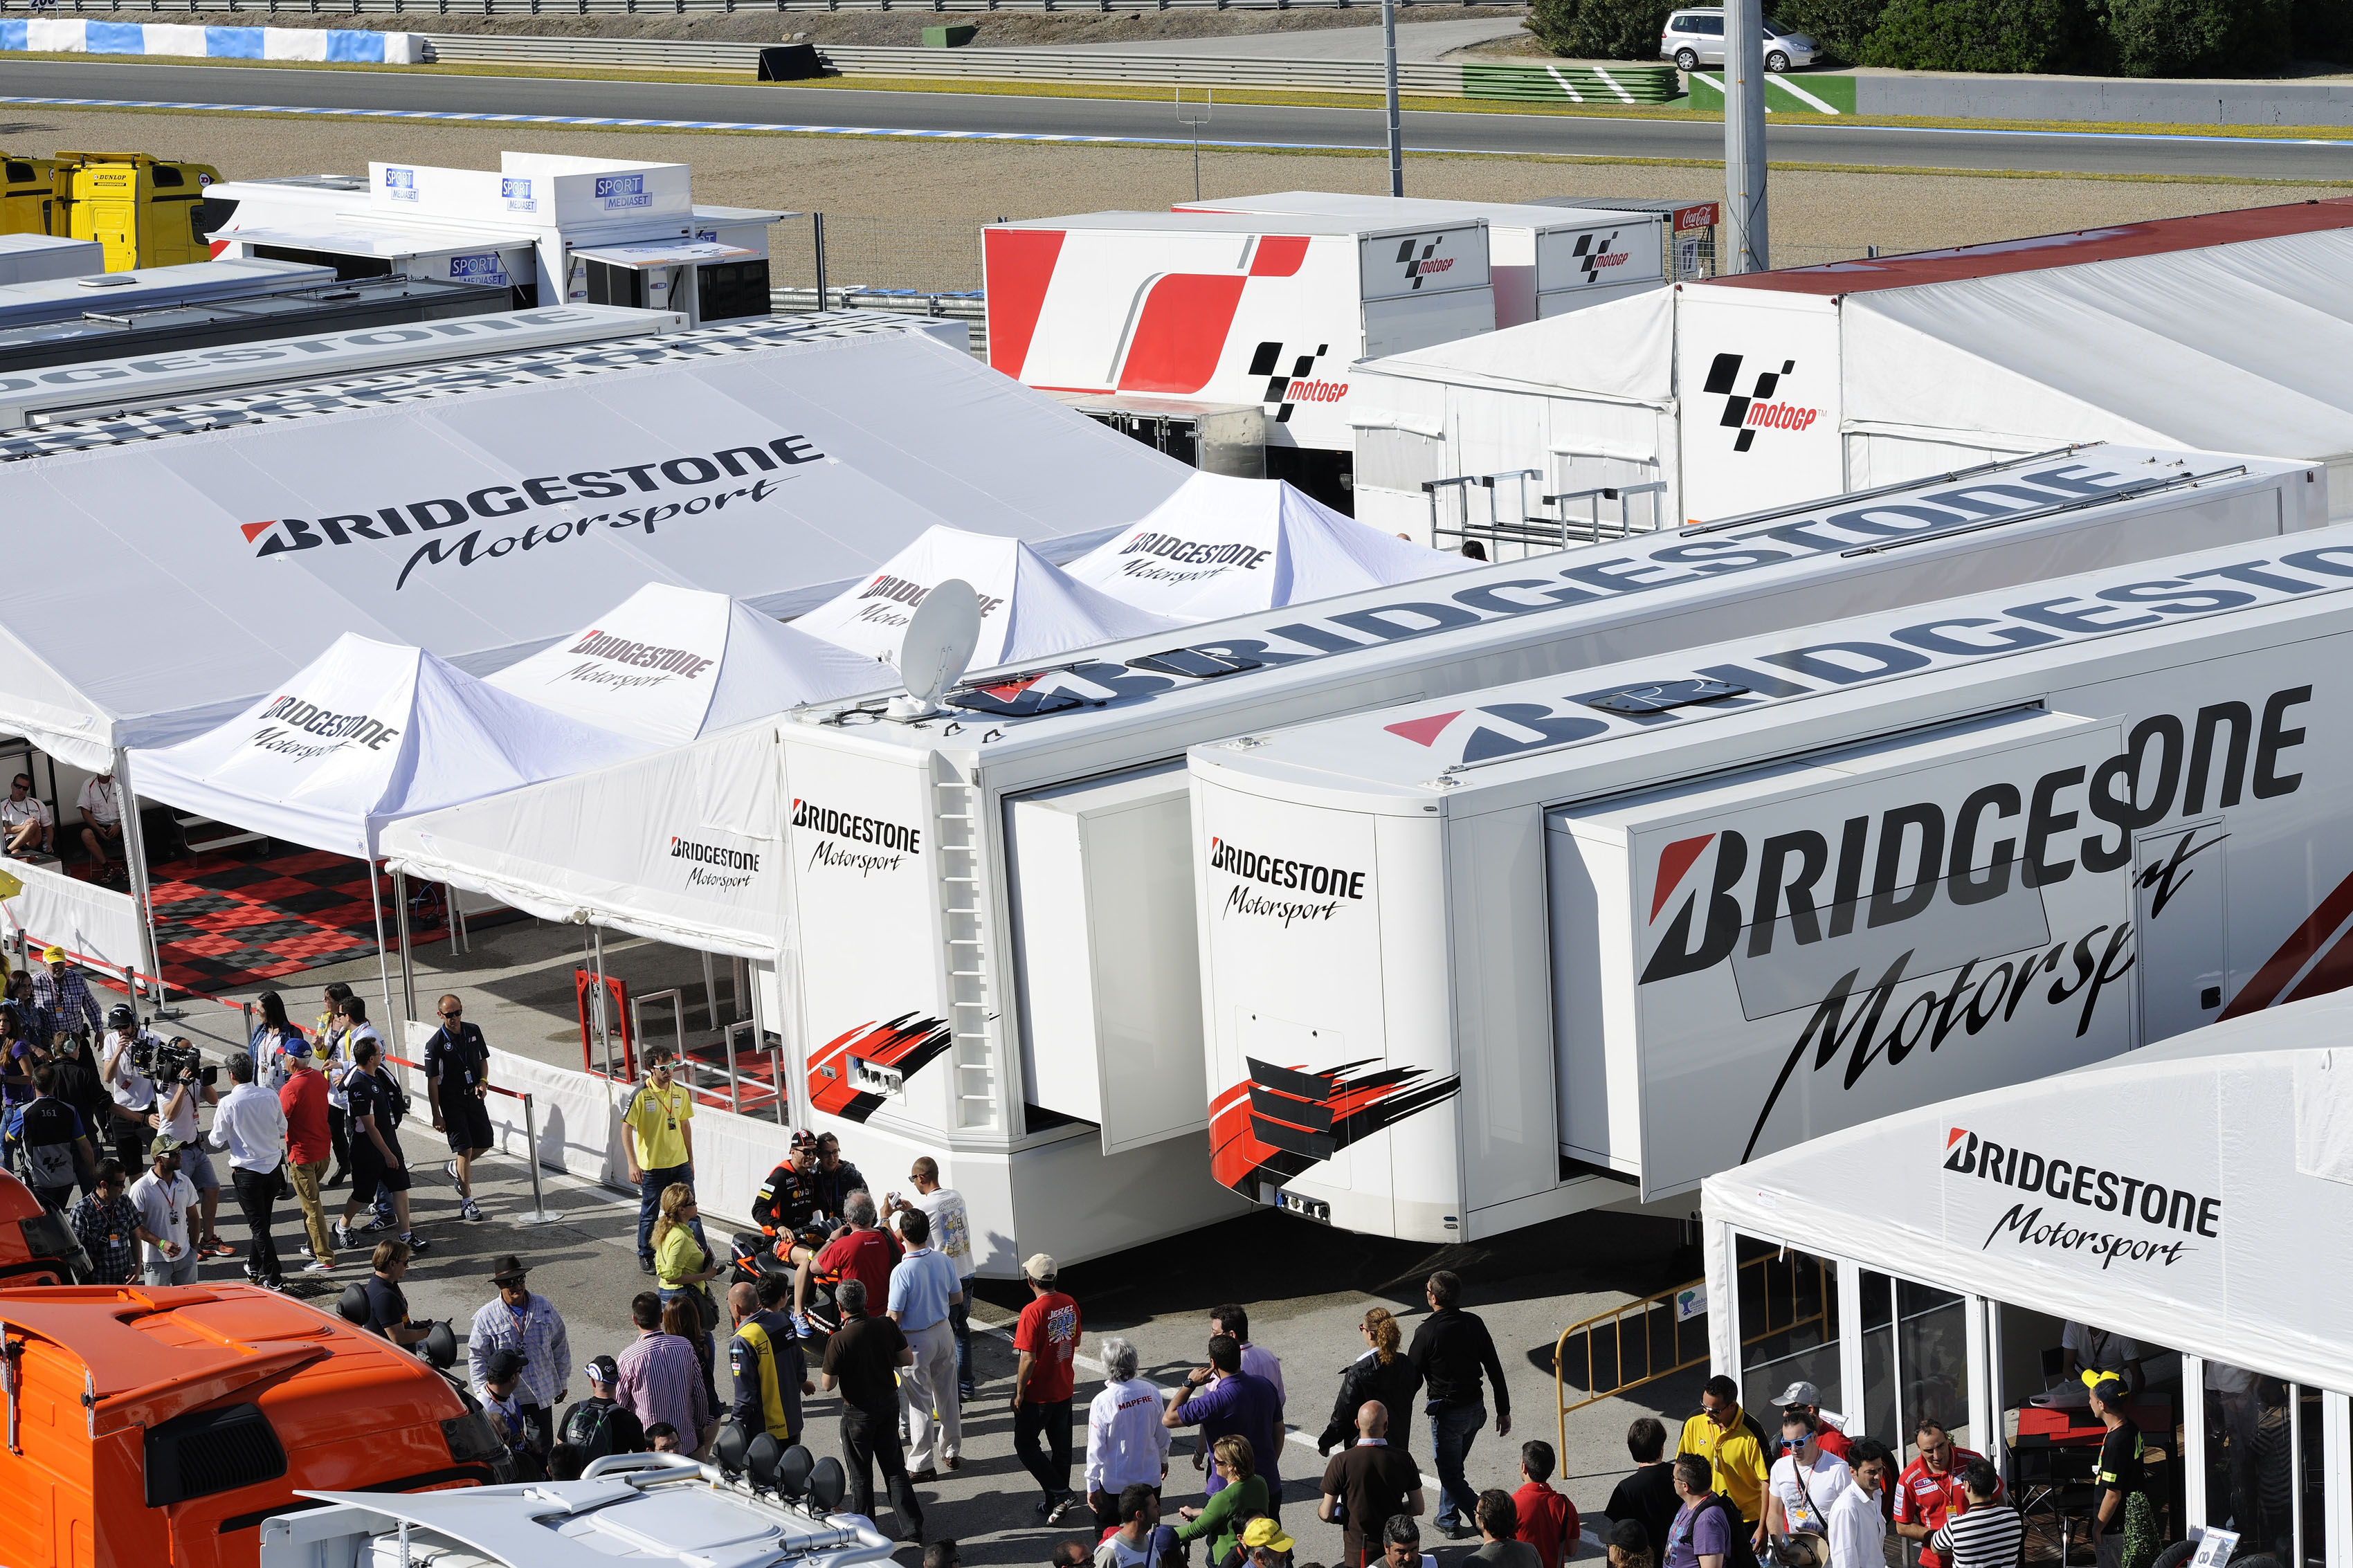 MotoGP: Bridgestone to withdraw from MotoGP after the 2015 season